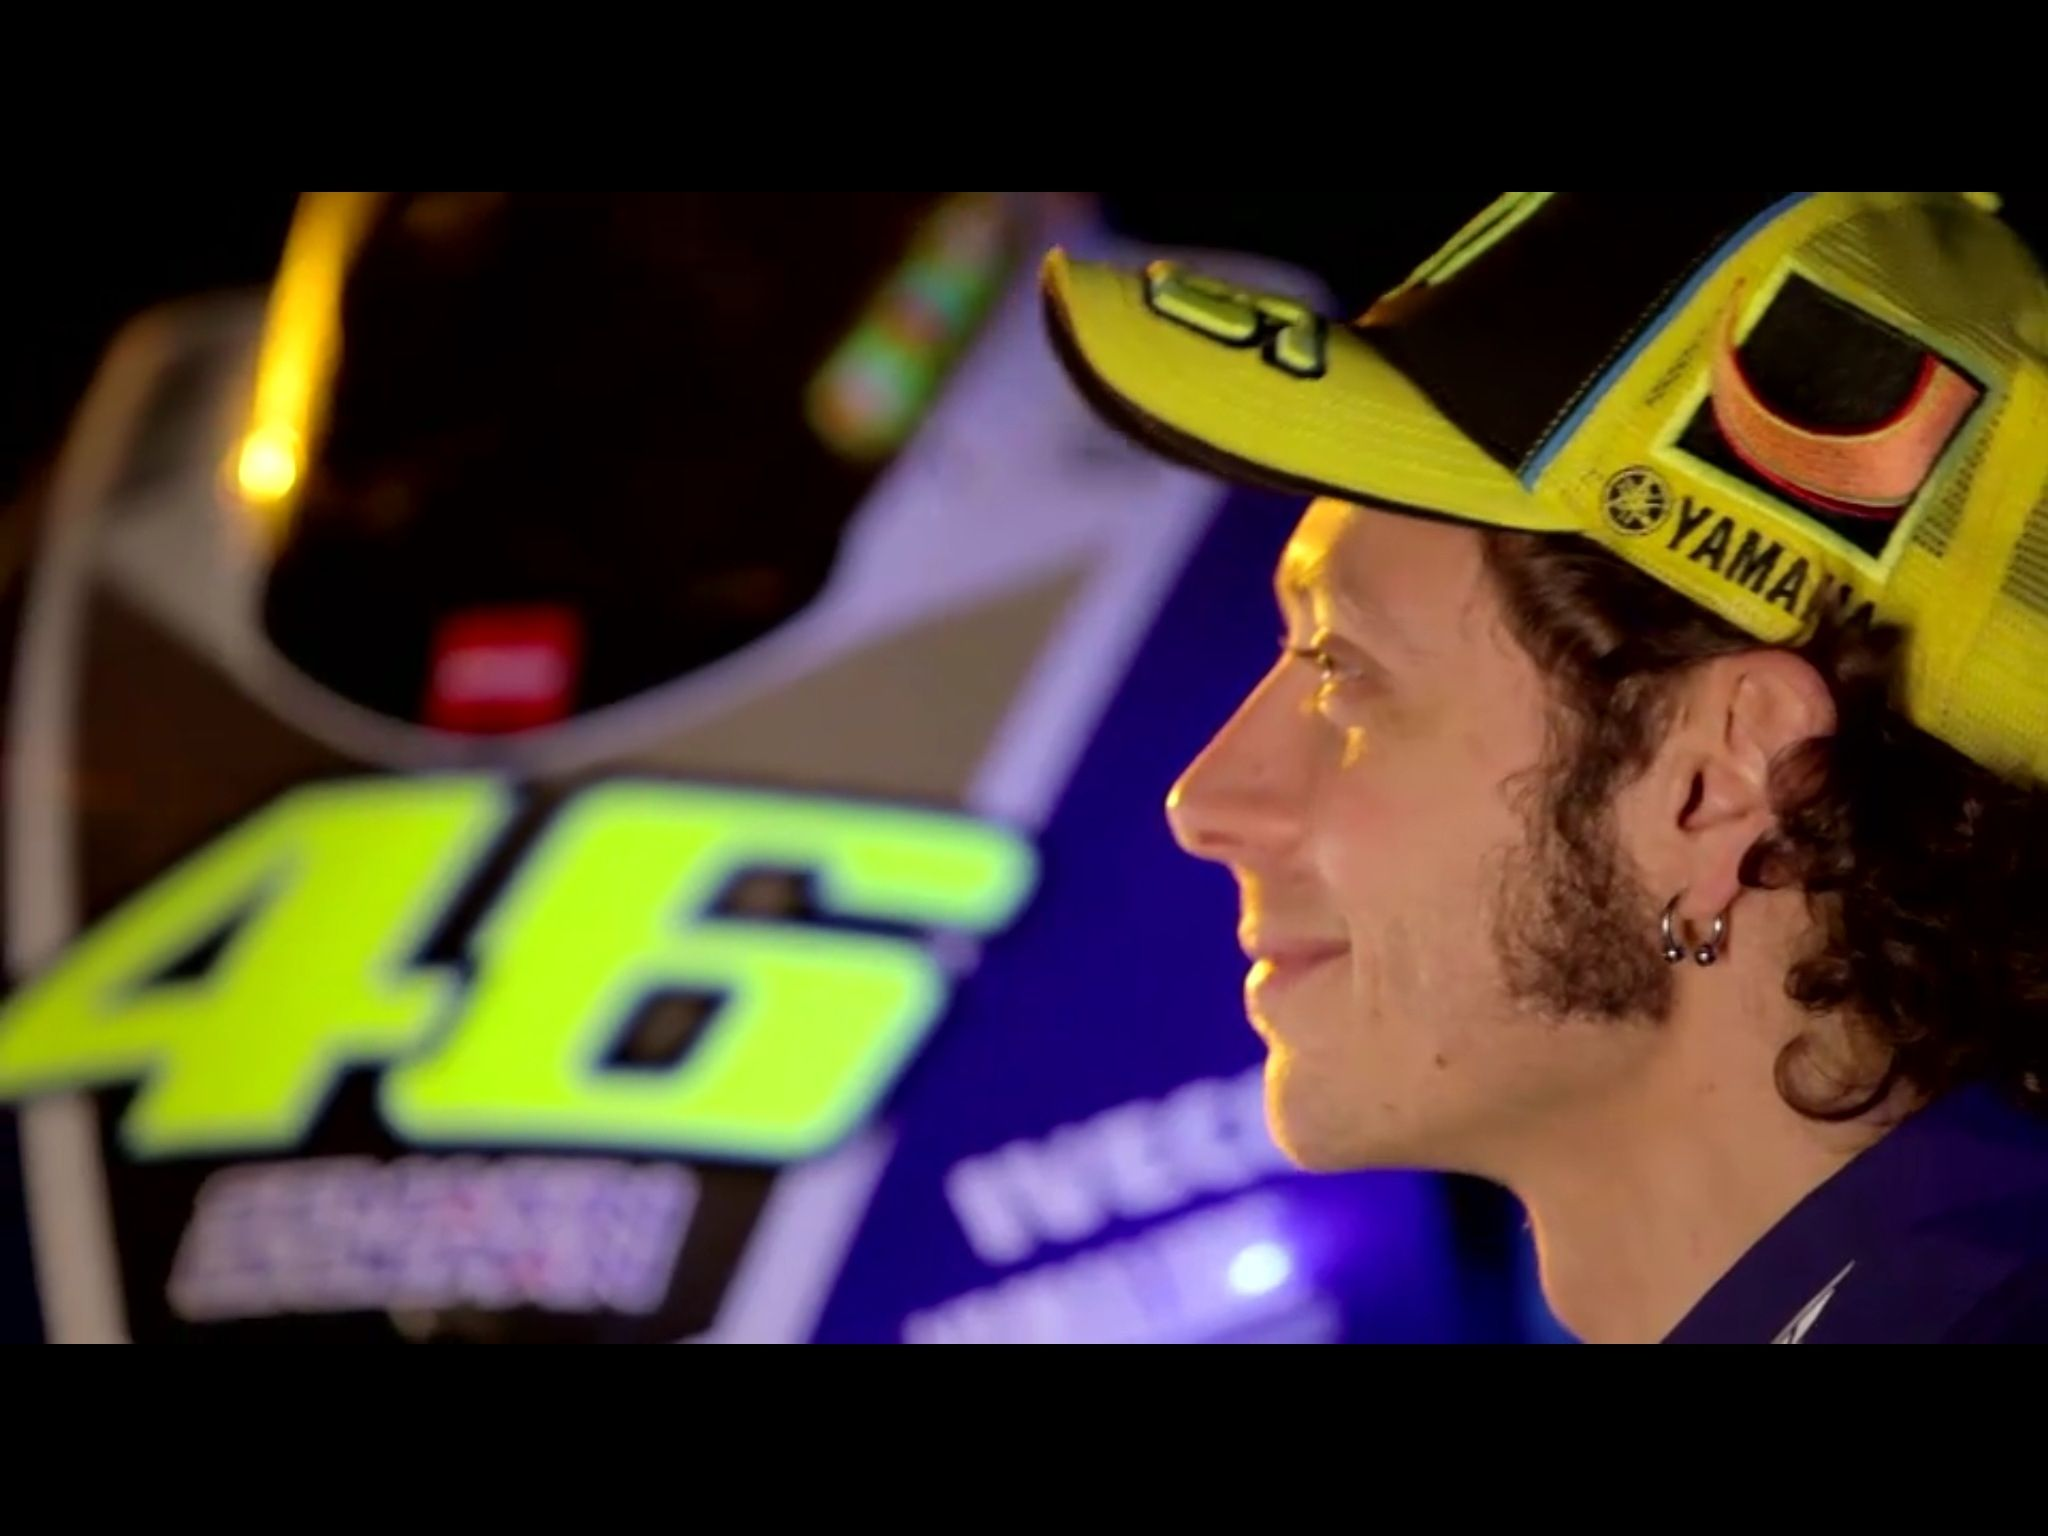 Rossi with New M1 for Moto GP 2013